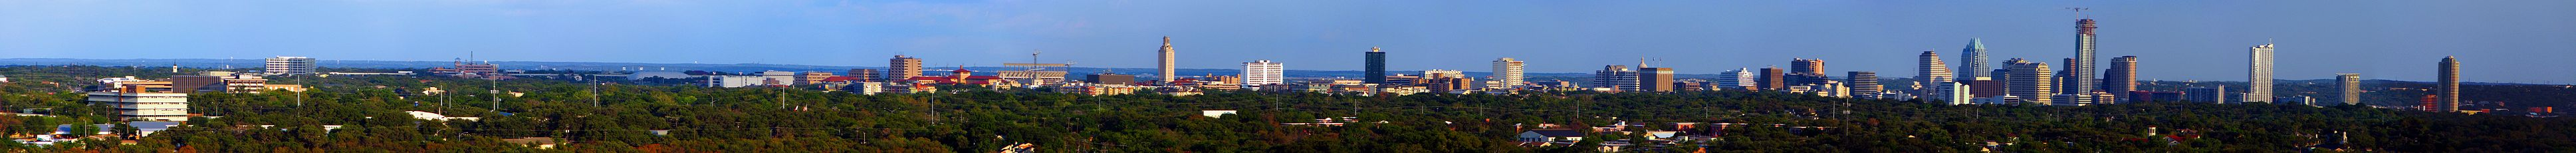 A picture of the Austin skyline in the afternoon.